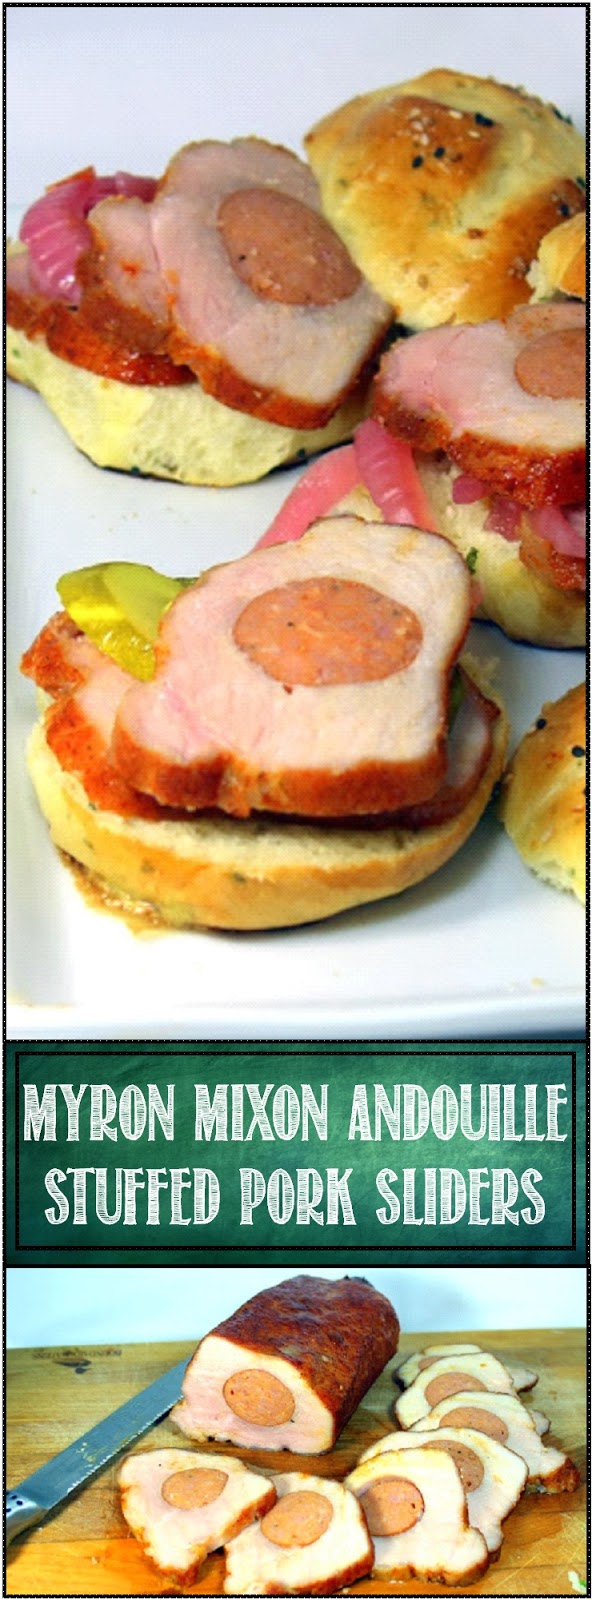 ... to Cook: Myron Mixon Andouille Stuffed Pork Sliders - Grilling Time